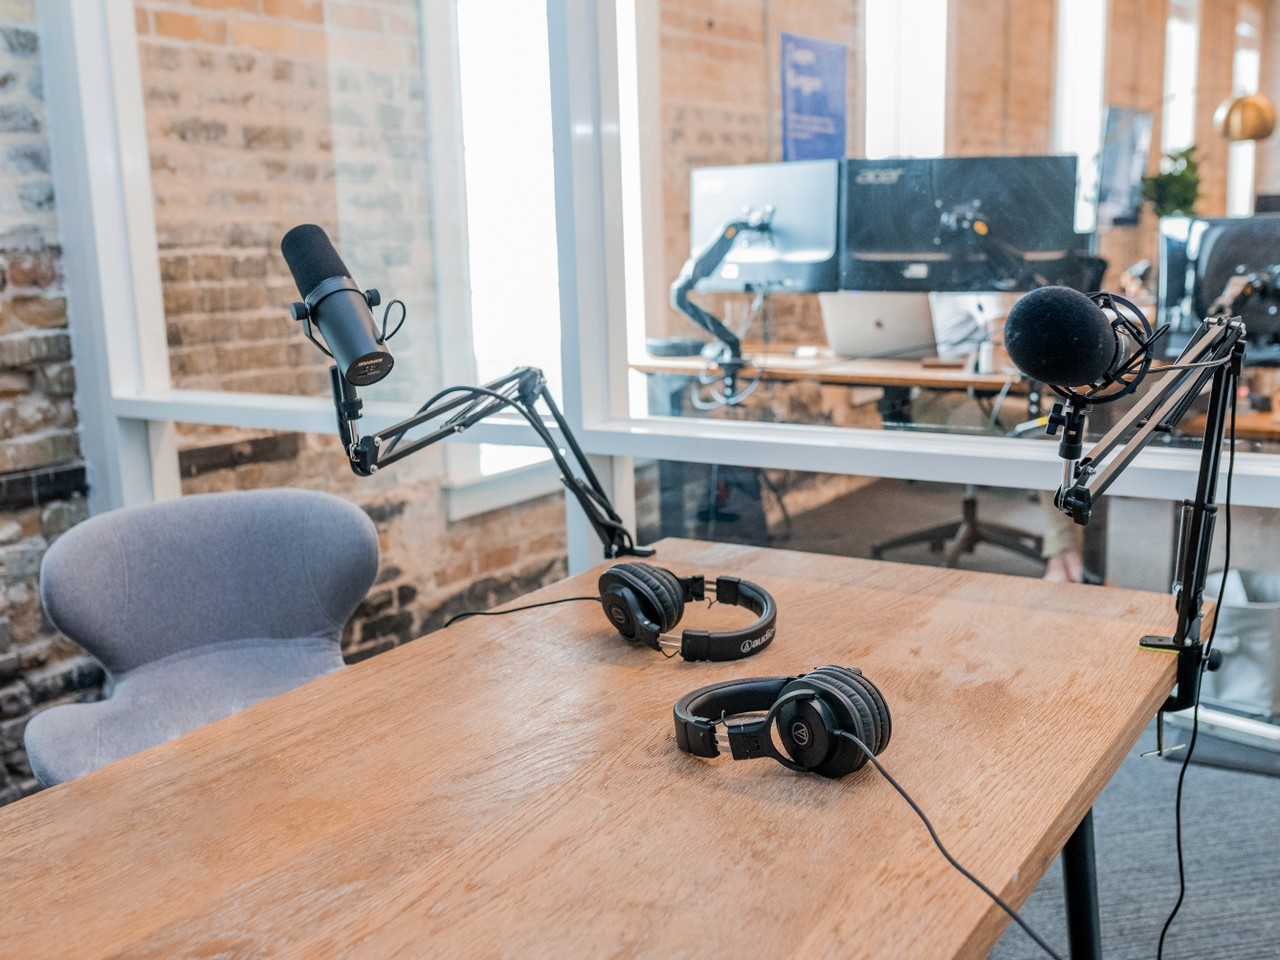 How to Start a Podcast - A Step-By-Step Guide to Recording and Publishing